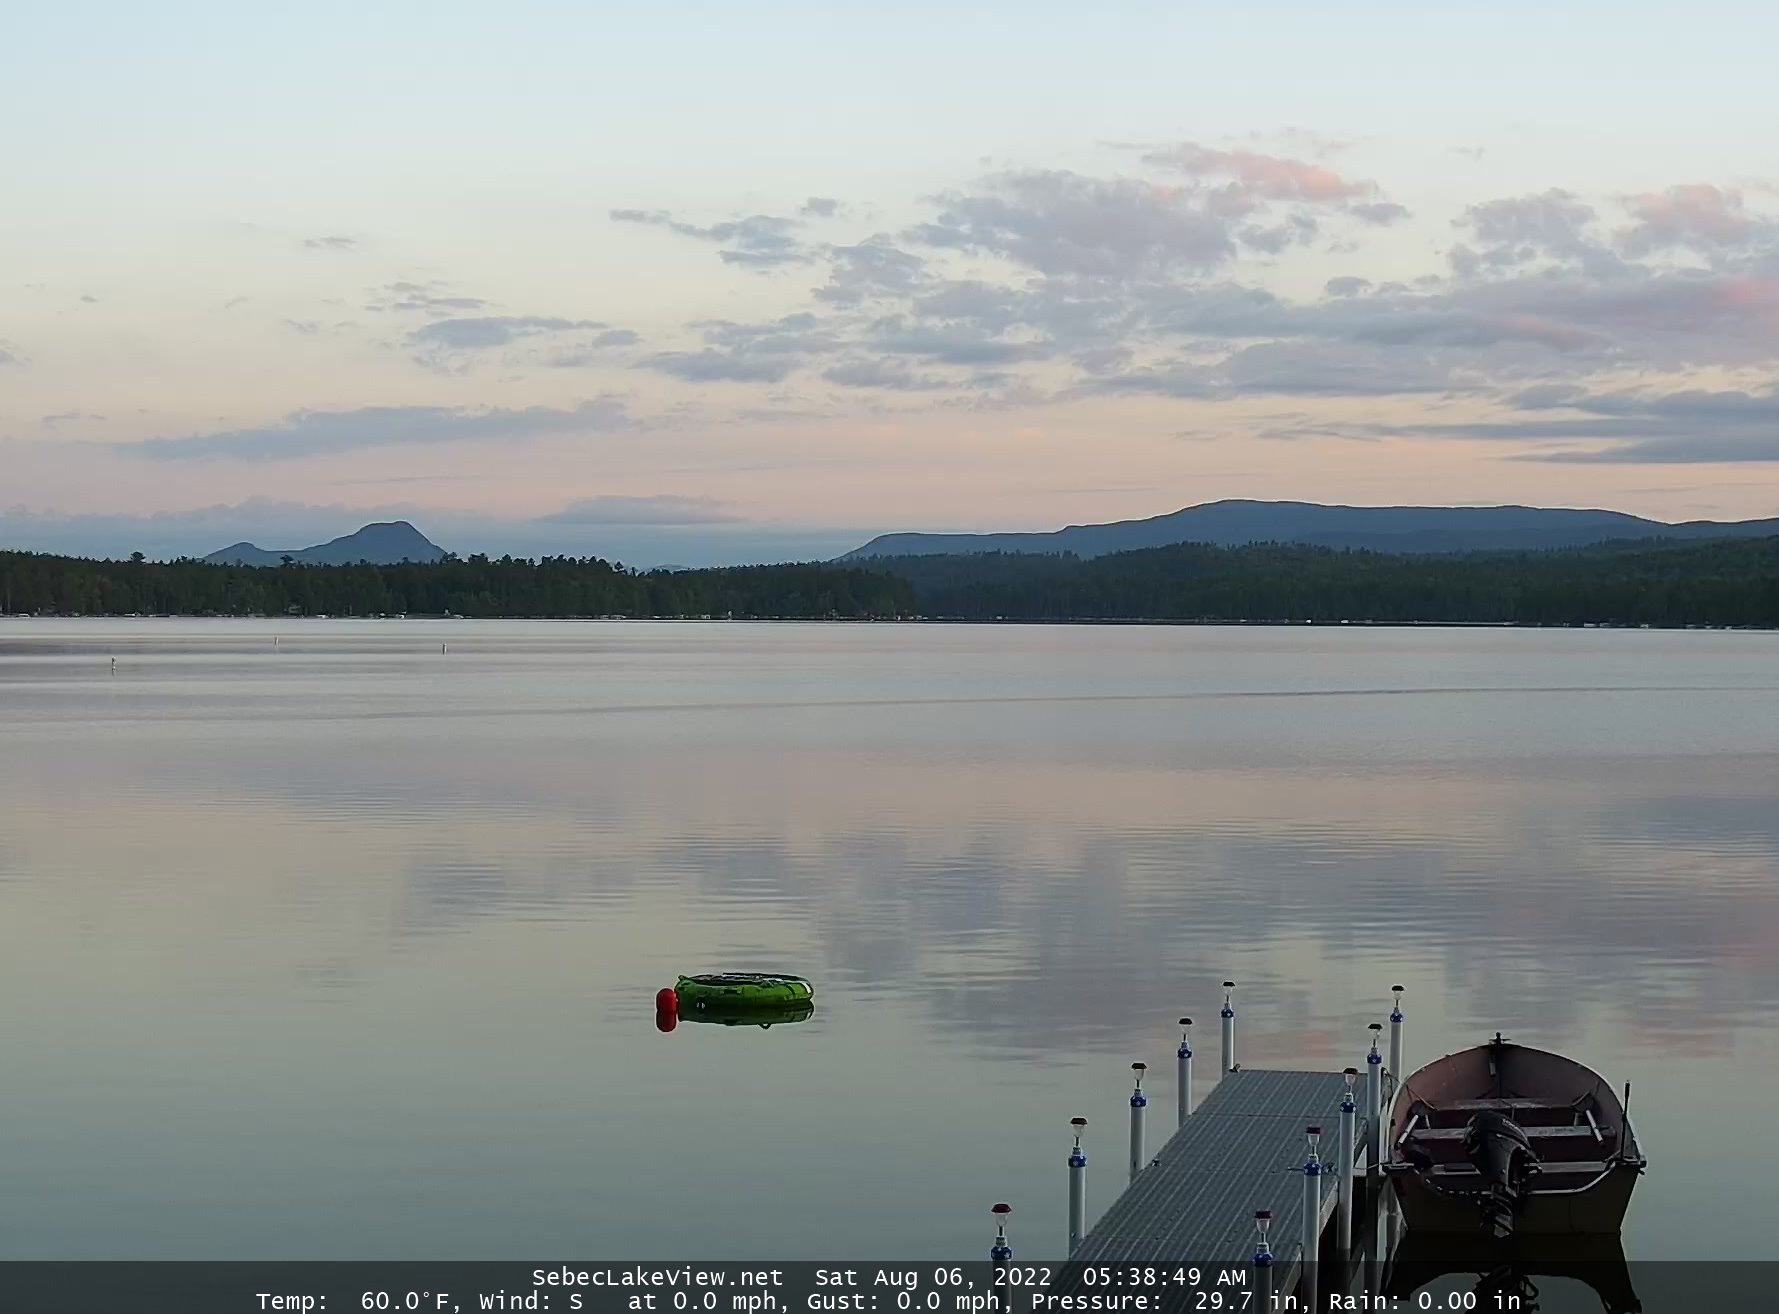 Sebec Lake WebCam